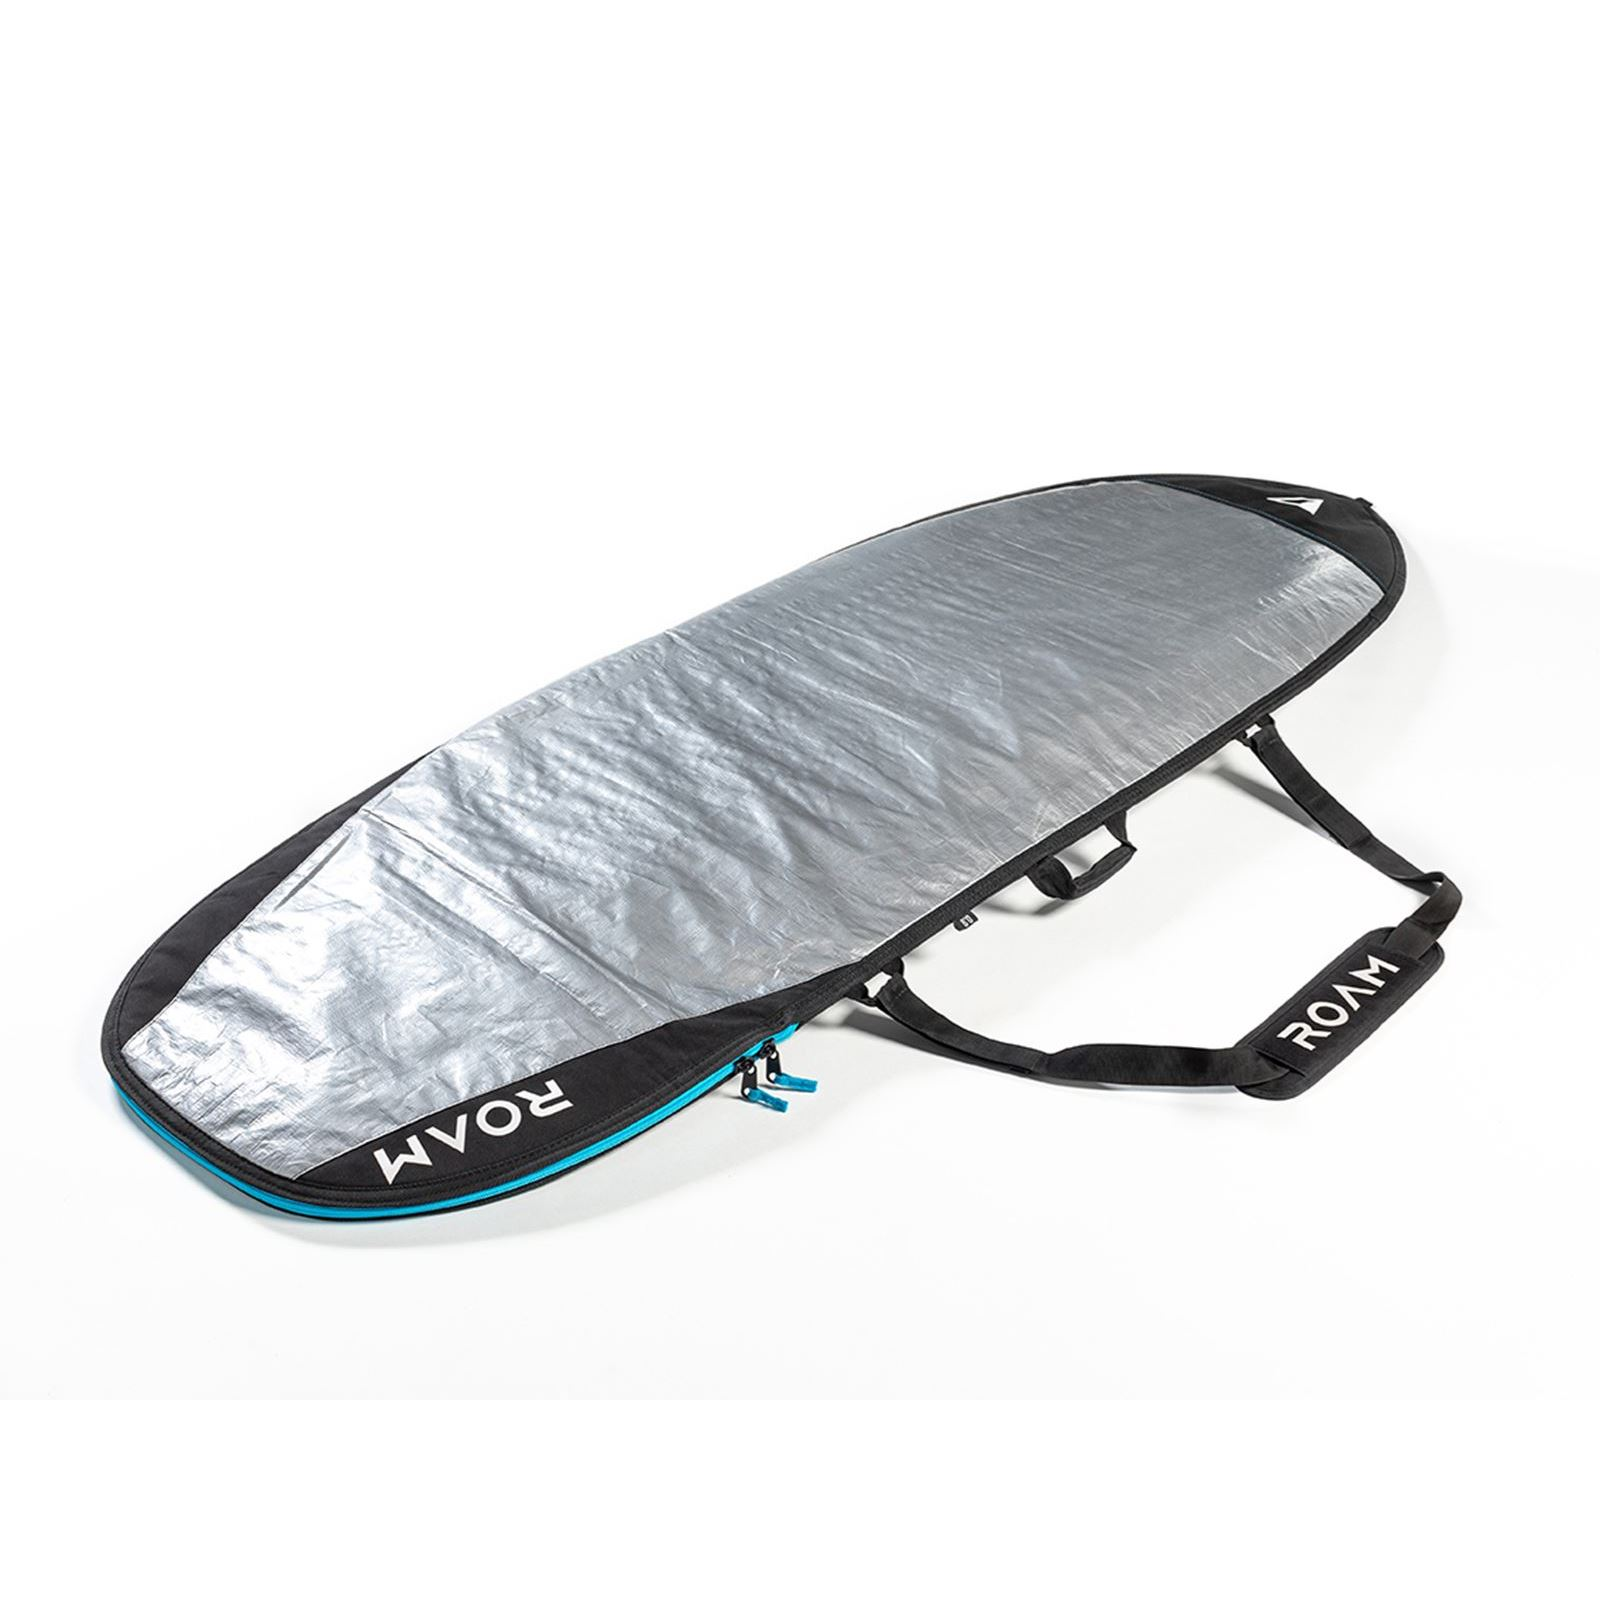 ROAM Boardbag Surfboard Daylight Hybrid Fish 5.8